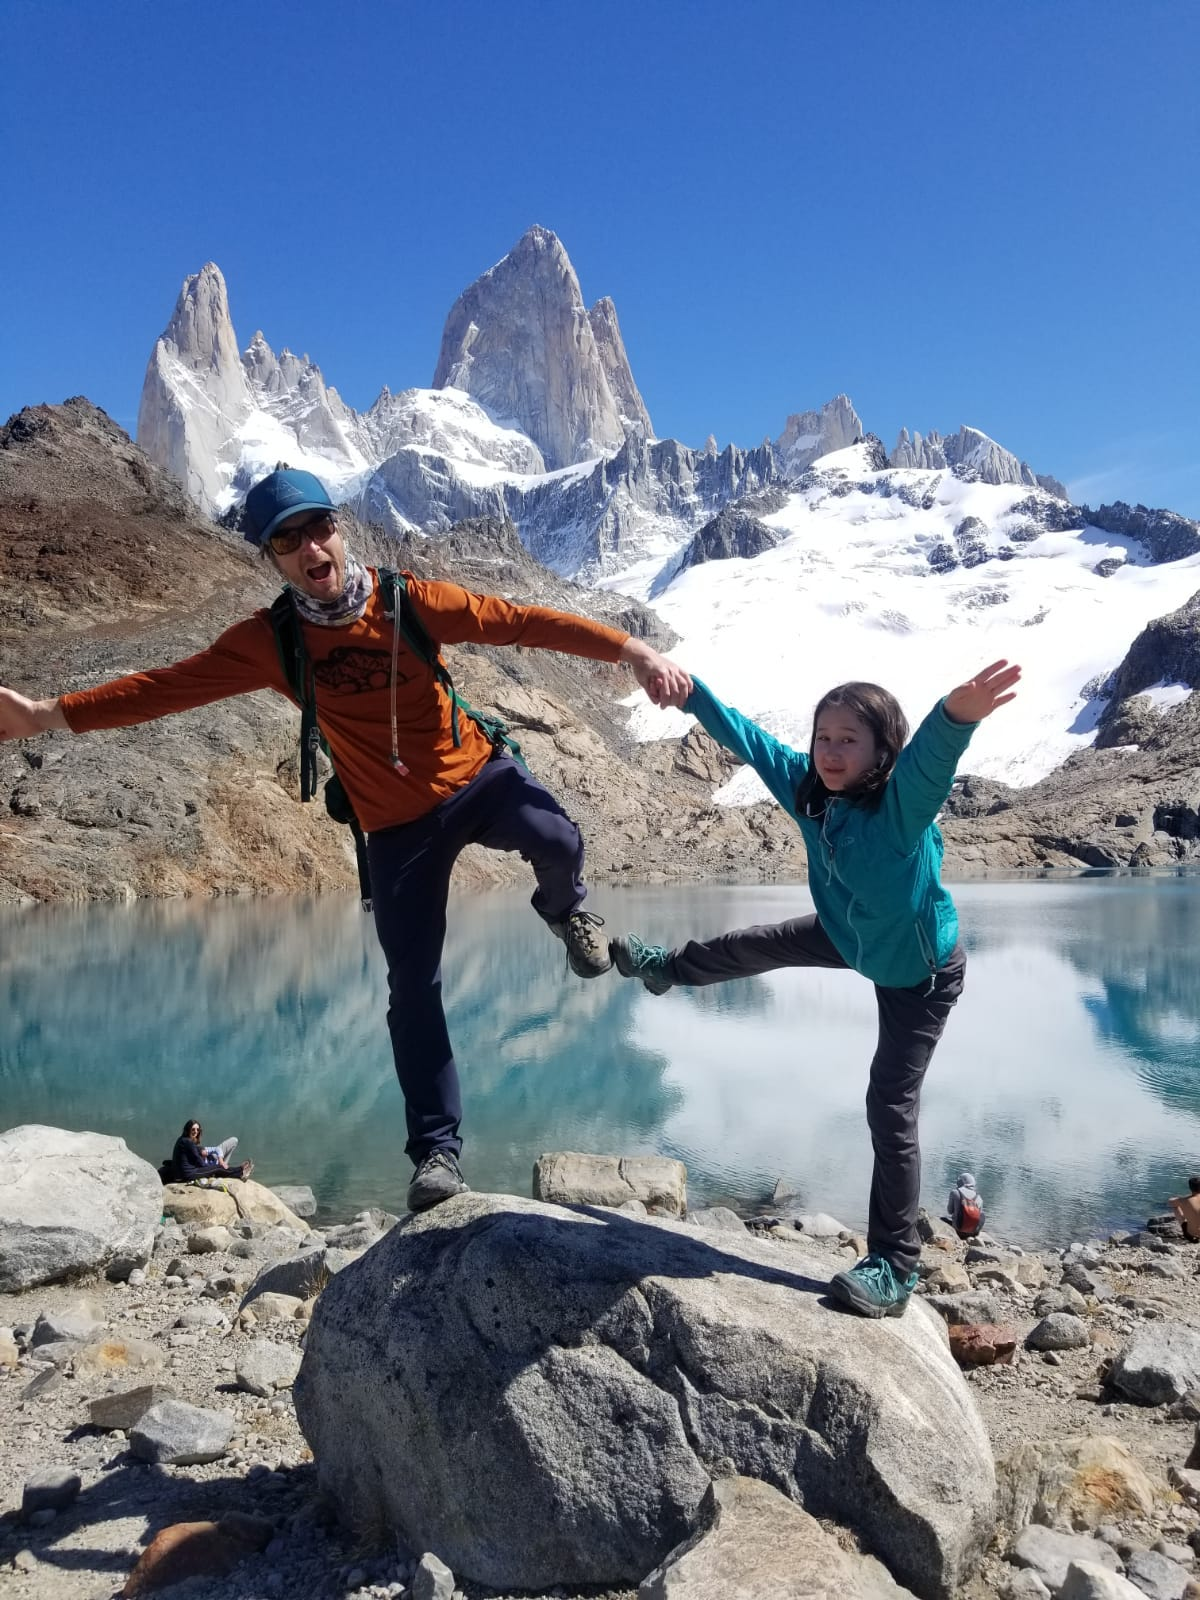 The Bailey family was approximately halfway through a three-month trip across South America when they were caught in the COVID-19 lockdown in Peru. Andrew Bailey, a professor at University of Tennessee Chattanooga, poses with daughter Anya, 8, at Parque Nacional Los Glaciers in Patagonia, Argentina.